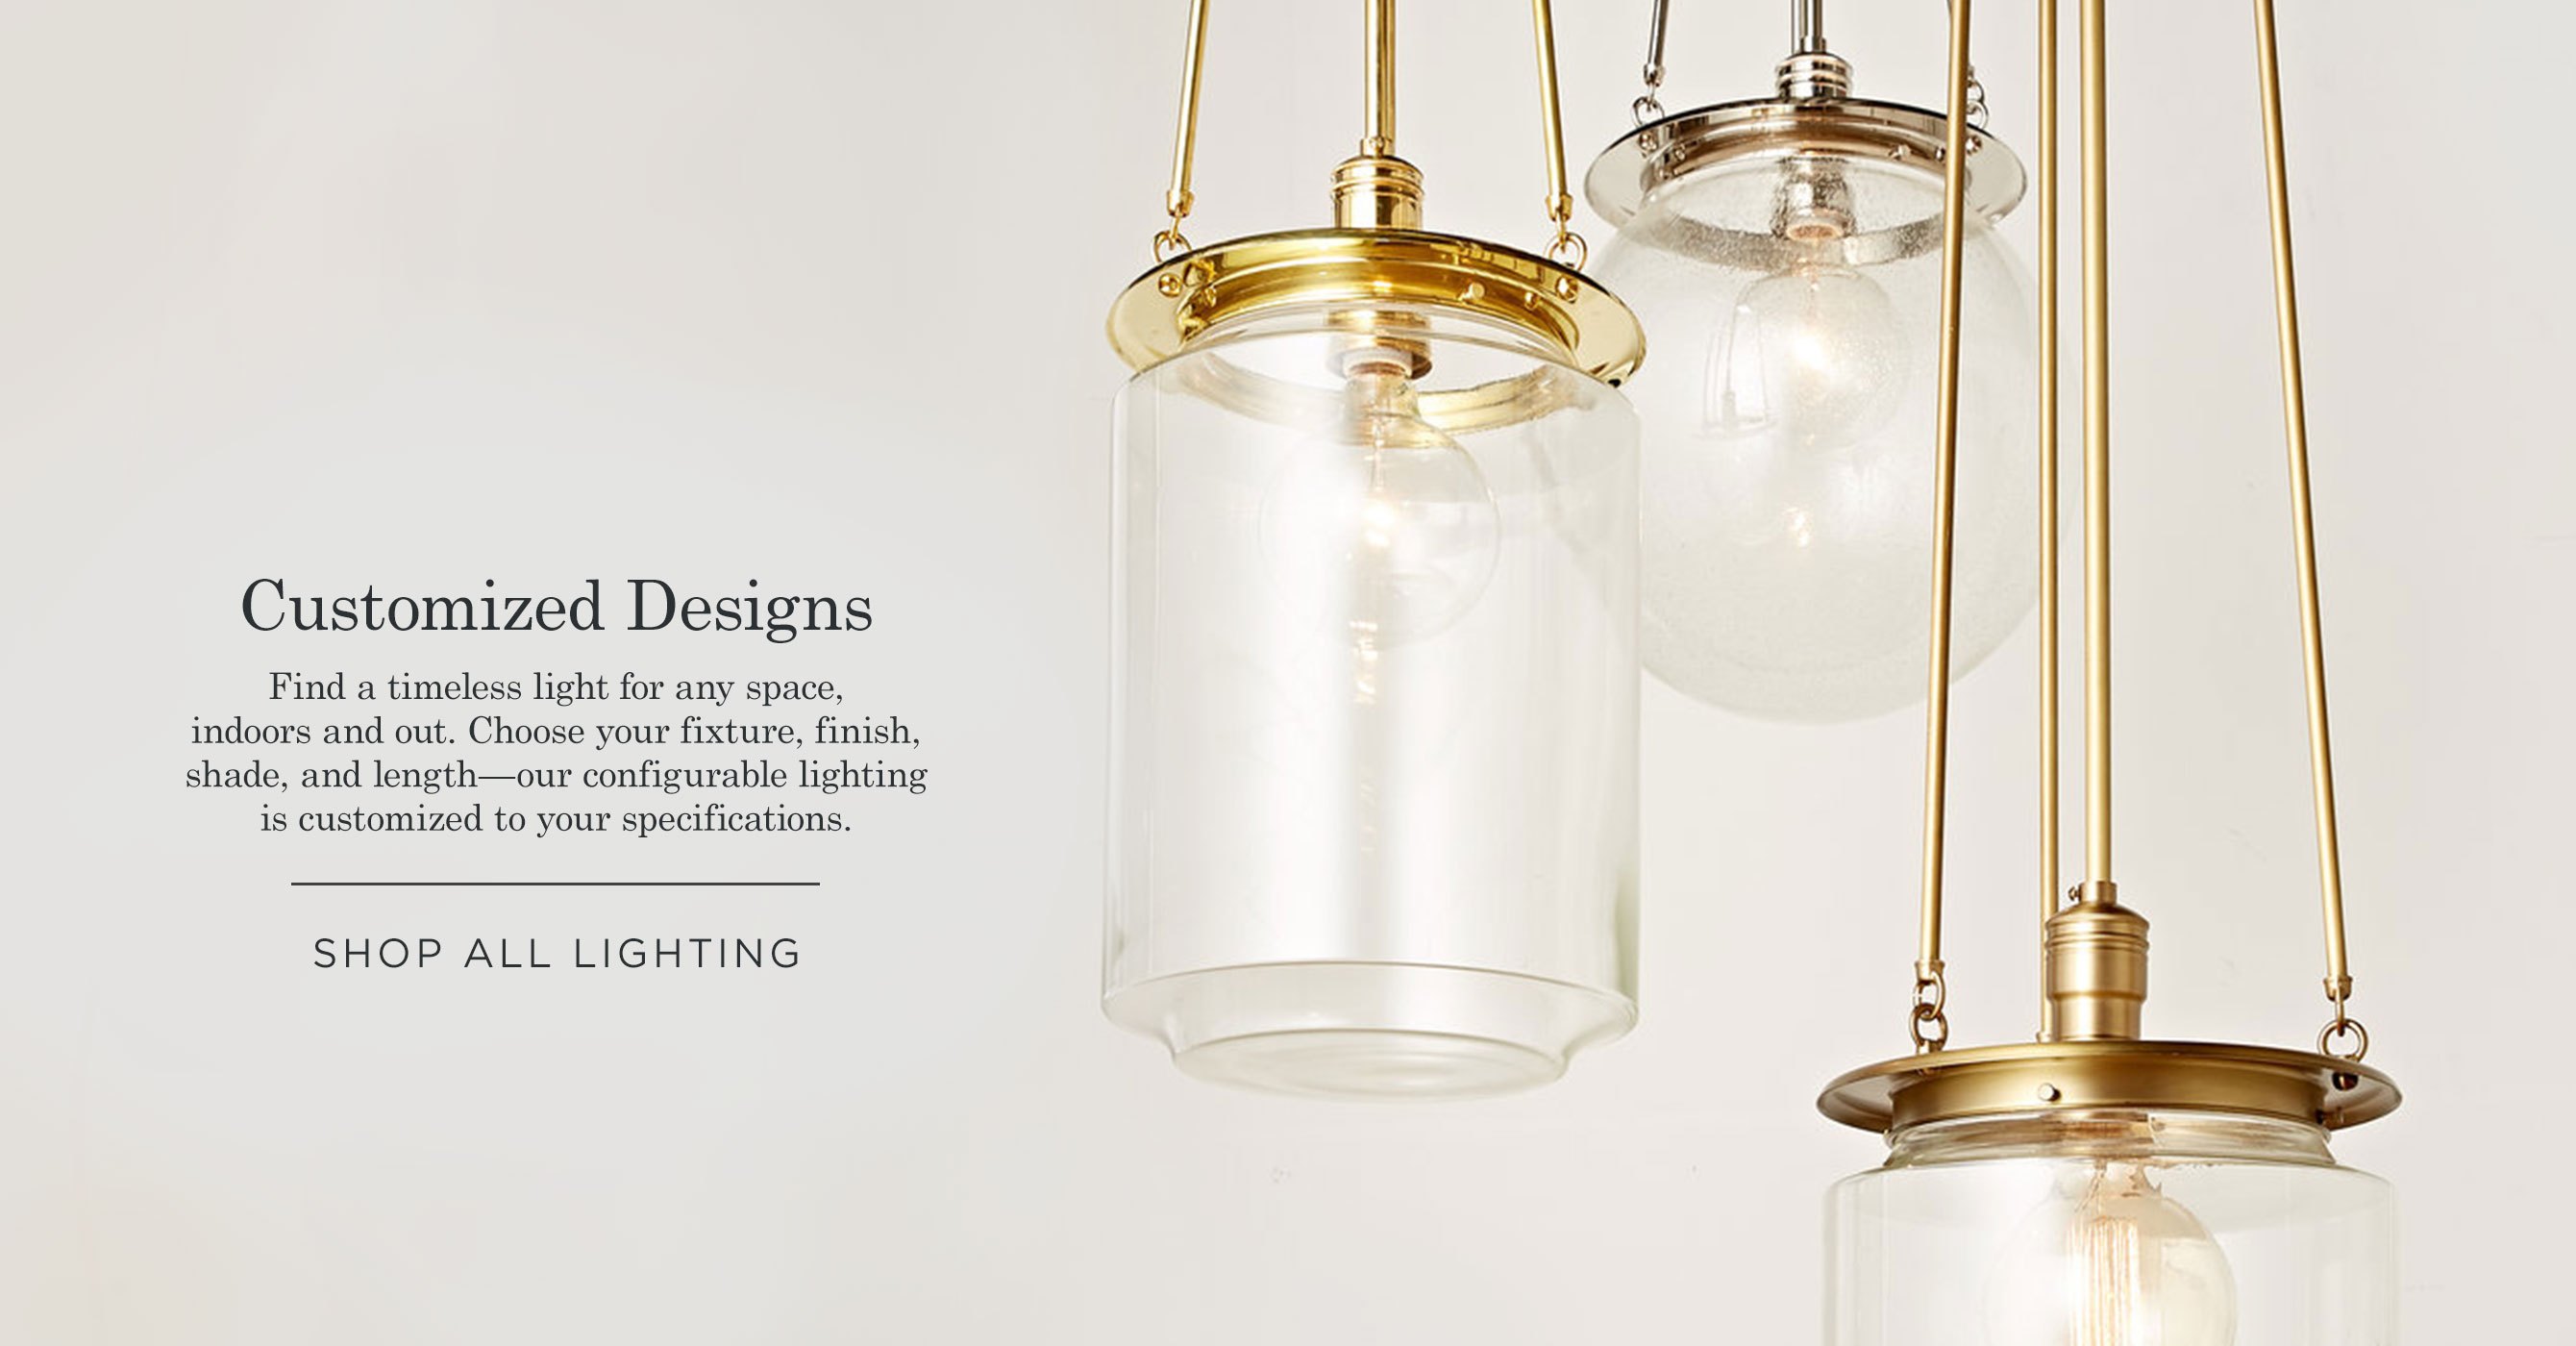 Classic American Lighting and House Parts